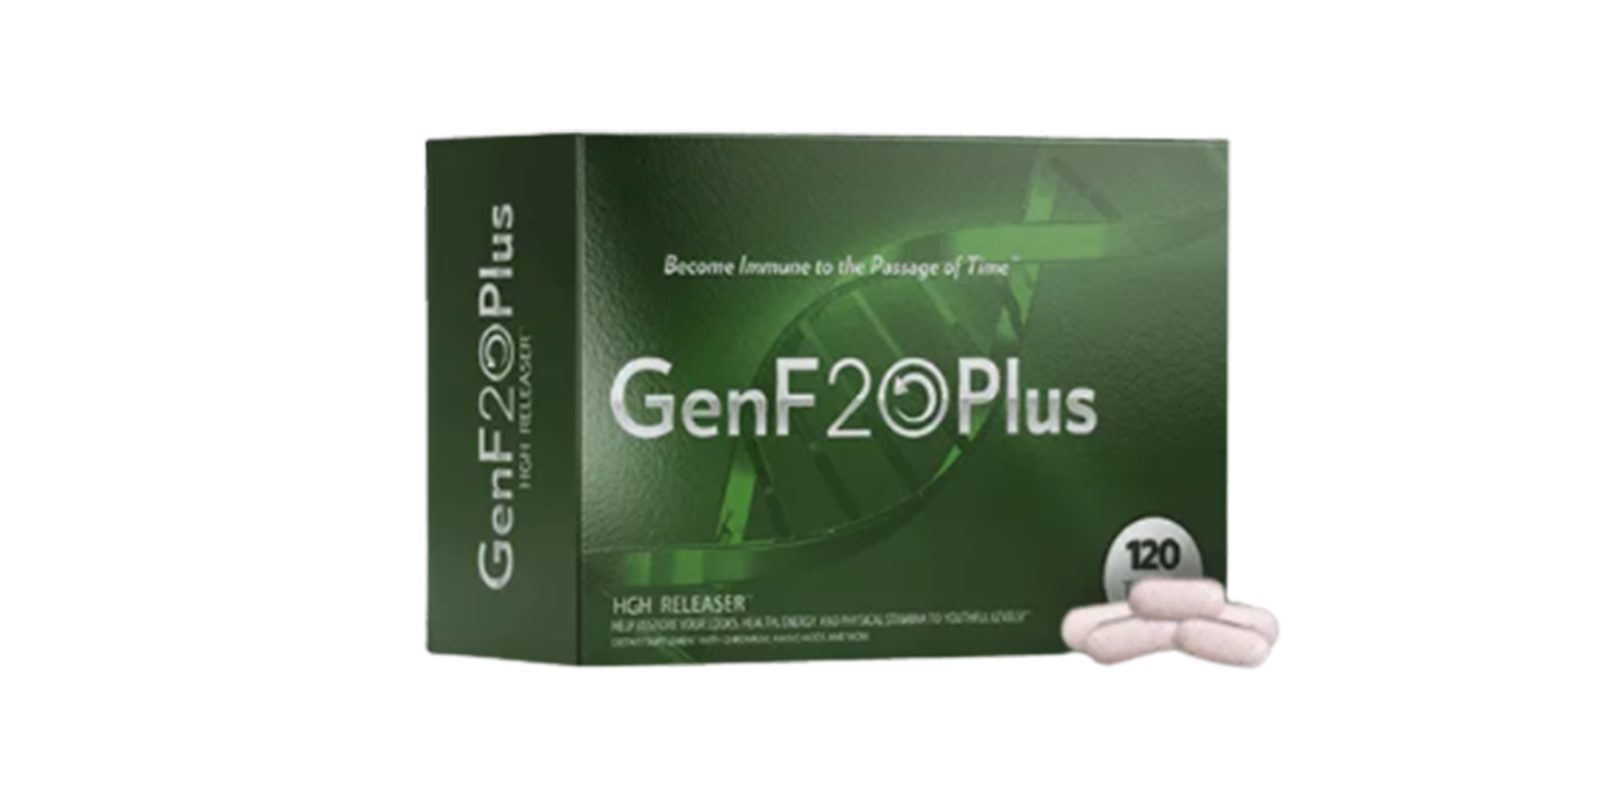 GenF20 Plus Reviews – A Natural Formula To Boost Your HGH Levels?